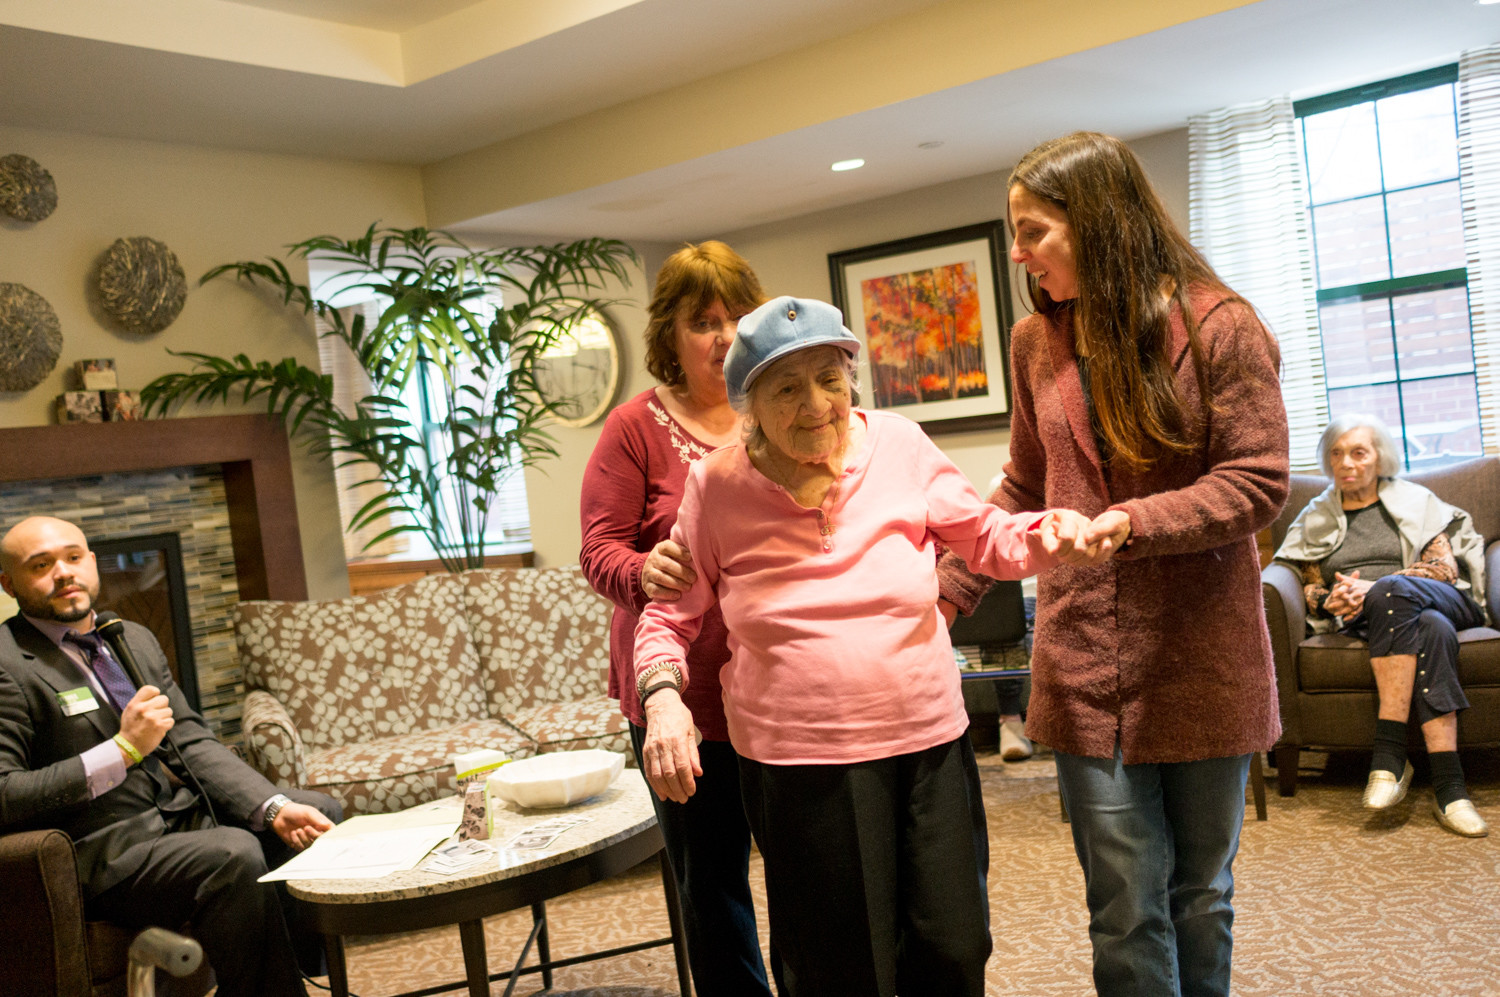 Ruth Abrams is helped to her seat by her daughter and granddaughter at Atria Riverdale after sharing a story about an influential teacher she had. During the event, Abrams' daughter, Barbara Confino, and granddaughter, Rebecca Confino, learned a story about Abrams' childhood she had never shared.